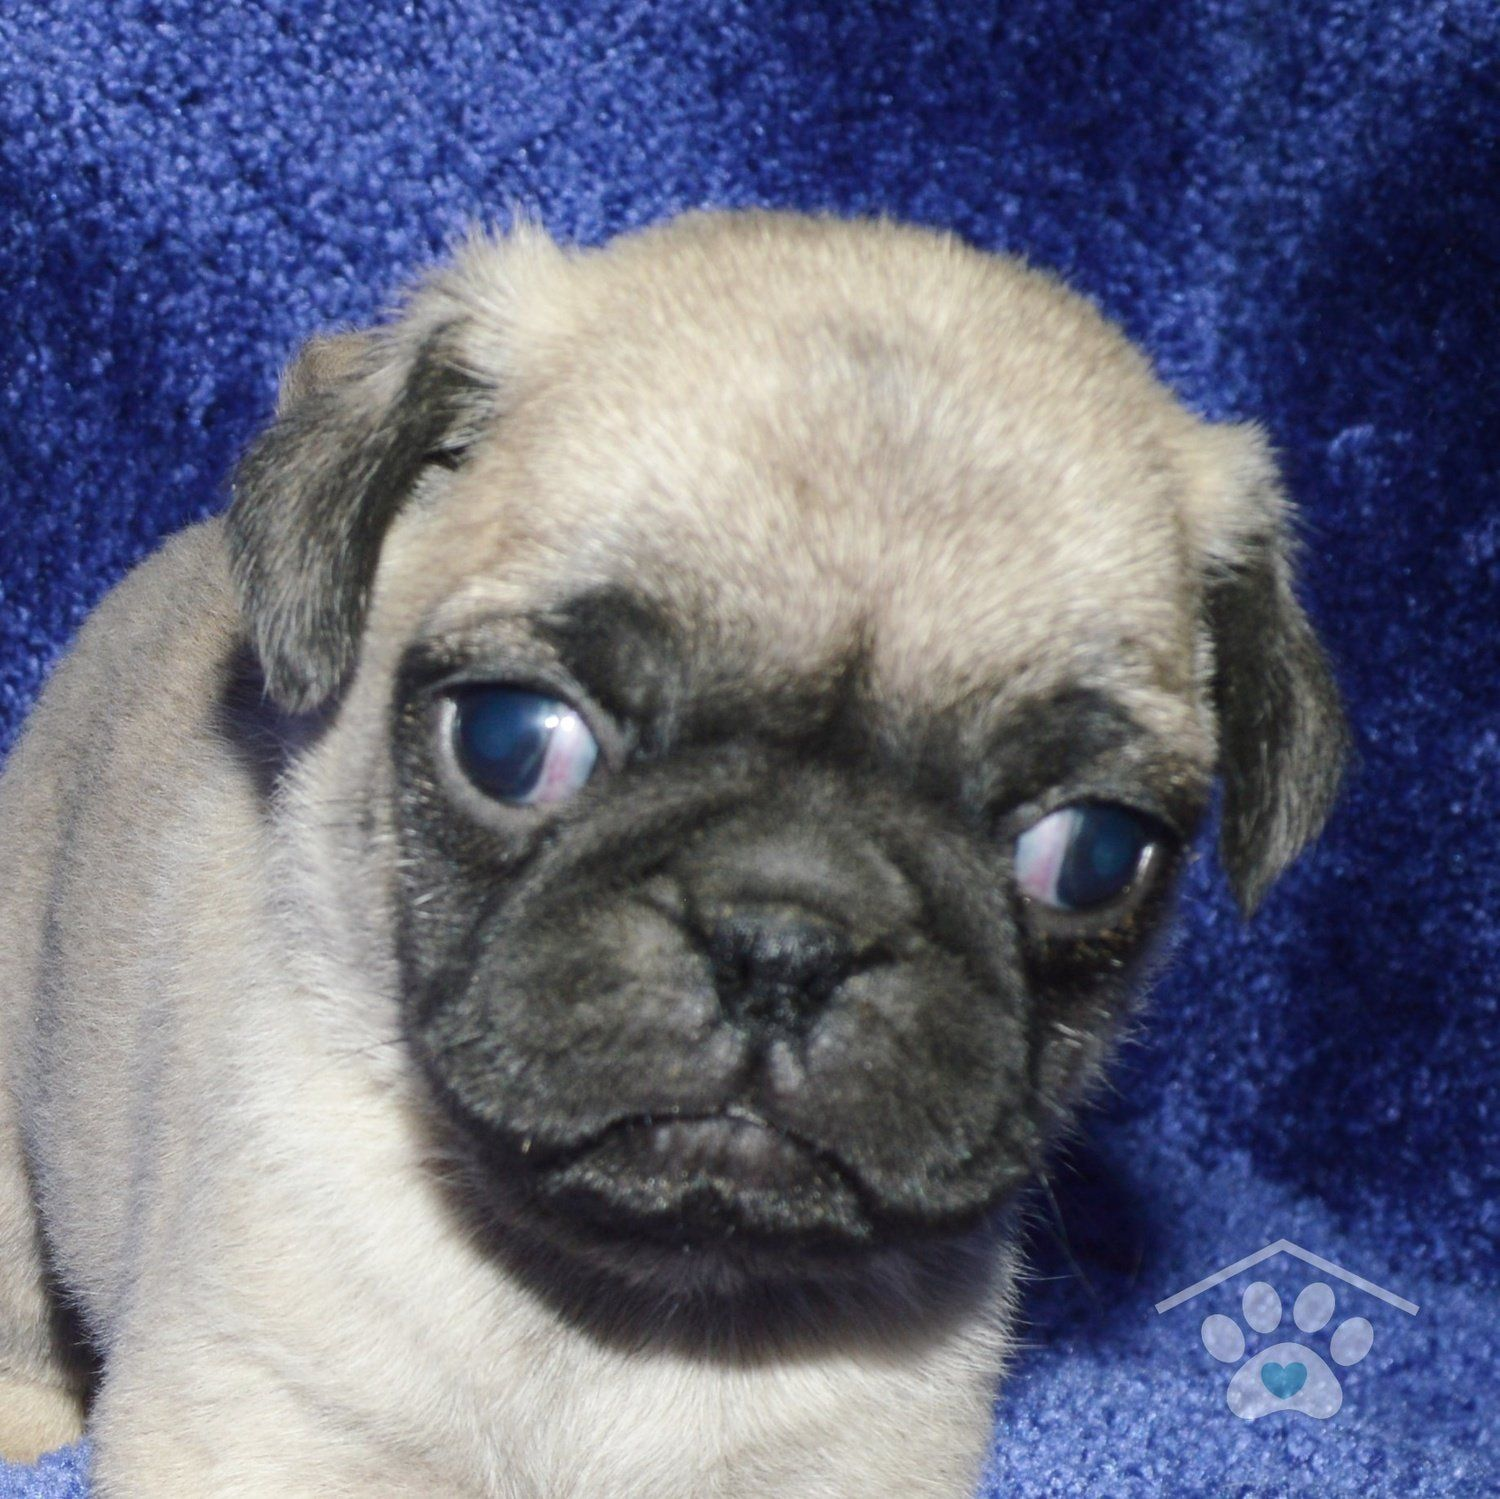 Meet Otis He Is A Good Looking Male Fawn Pug Puppy With A Great